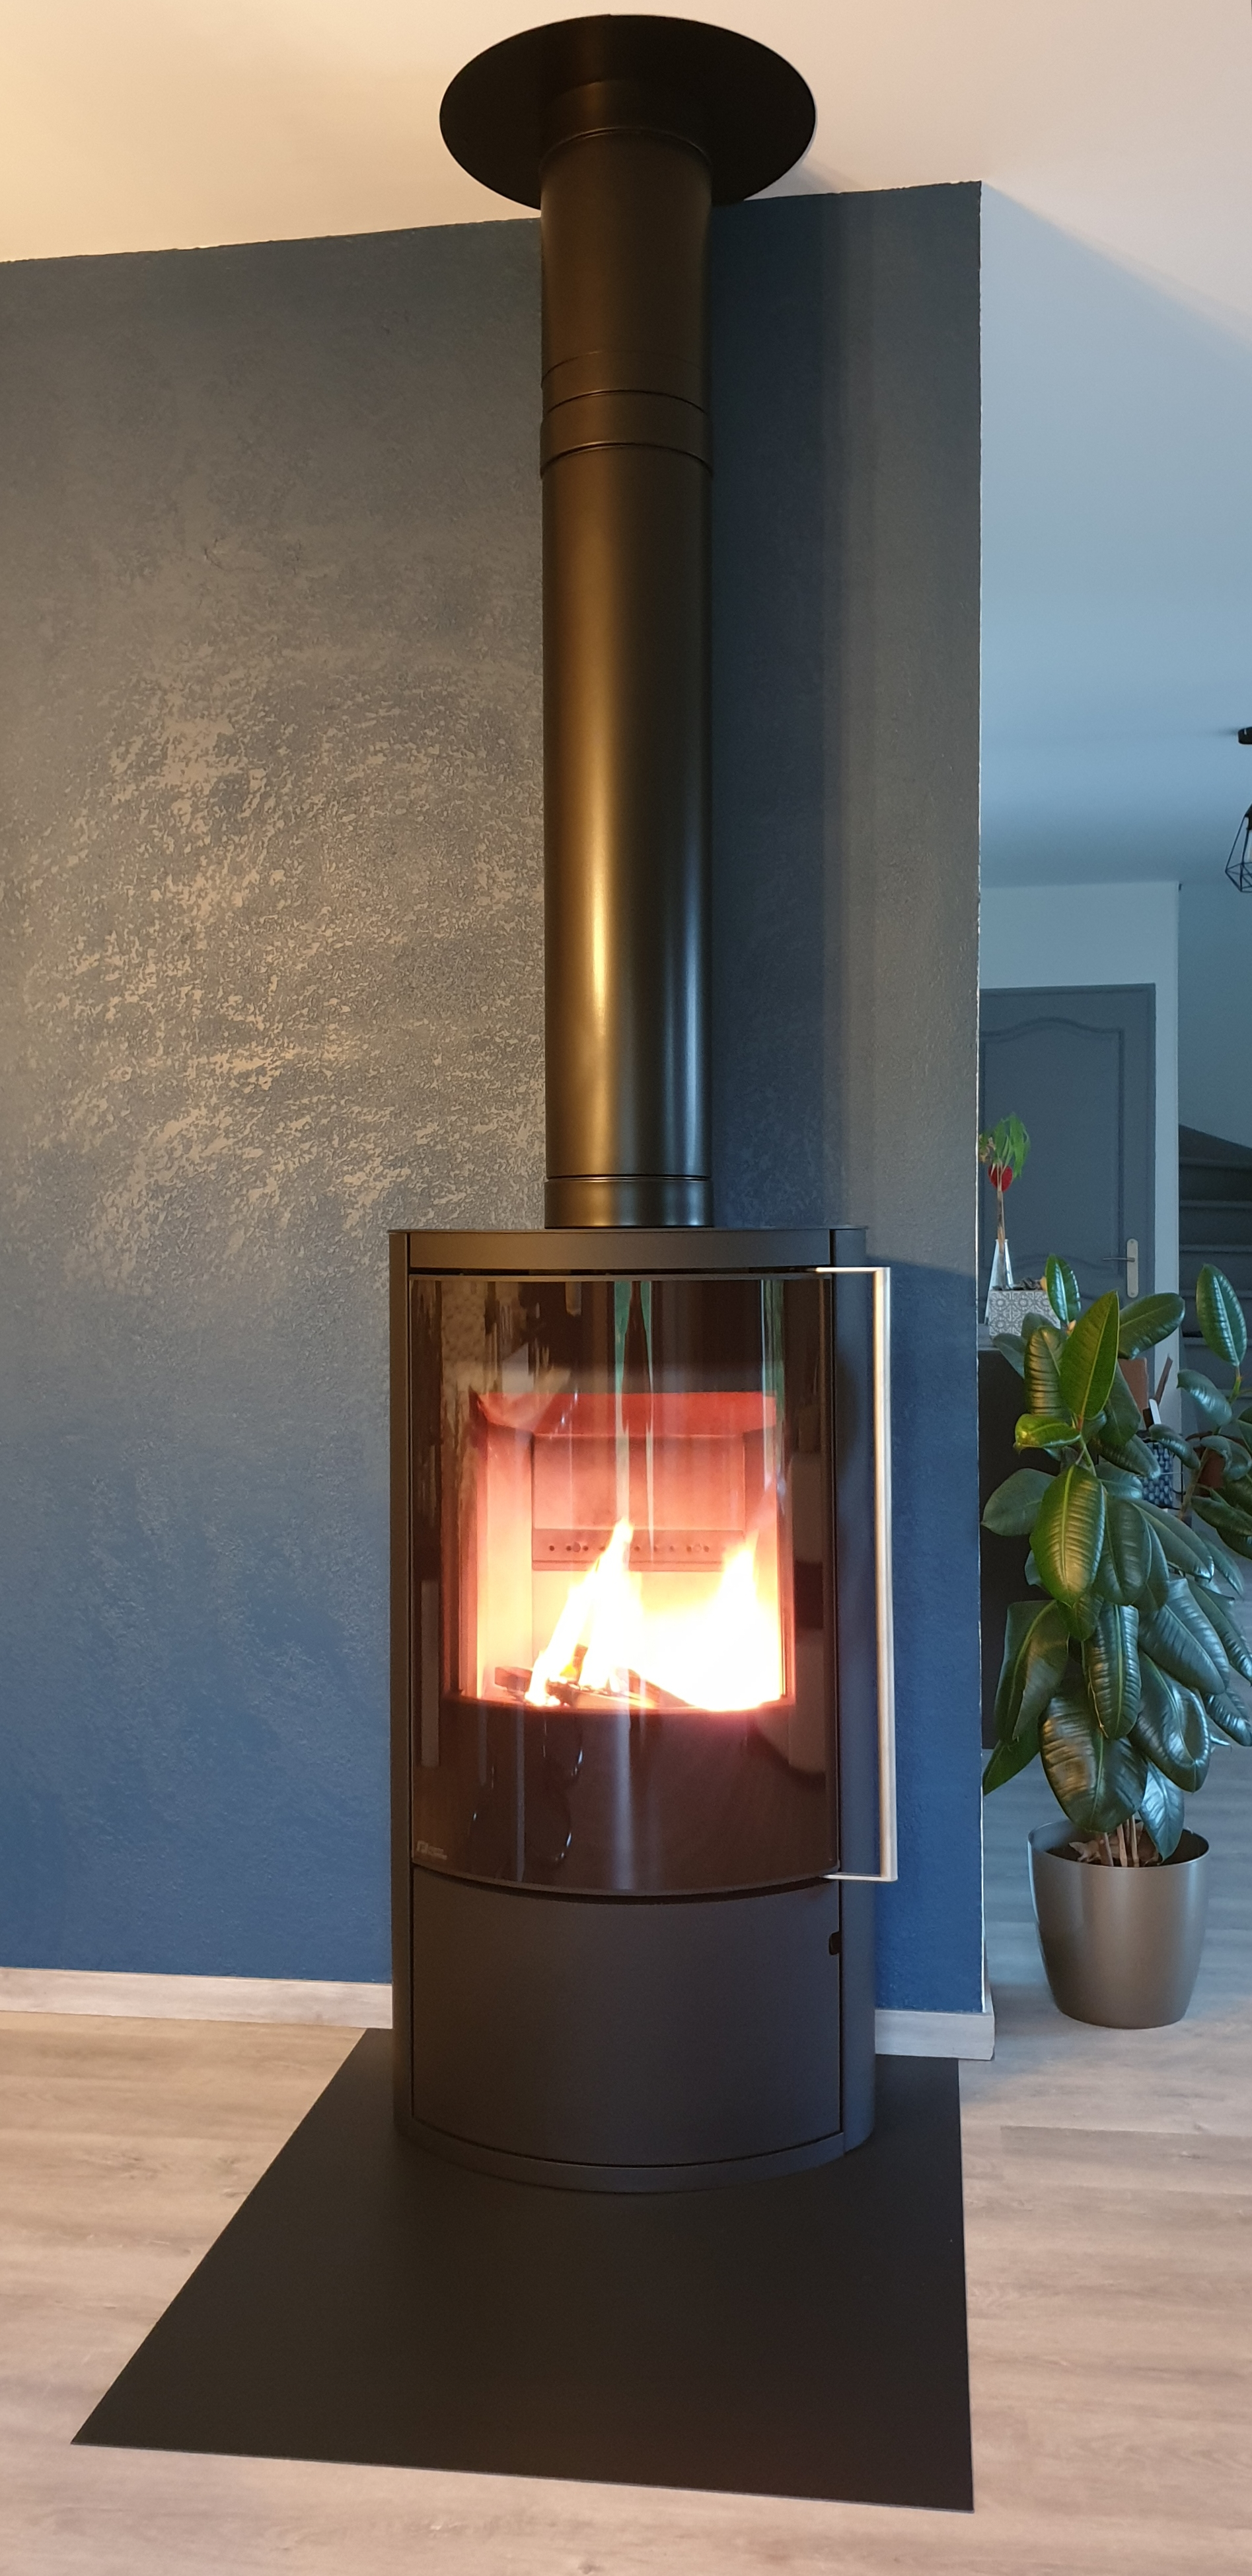 Fonte Flamme Mesa 9kW sur conduit MODINOX PTR30 150mm